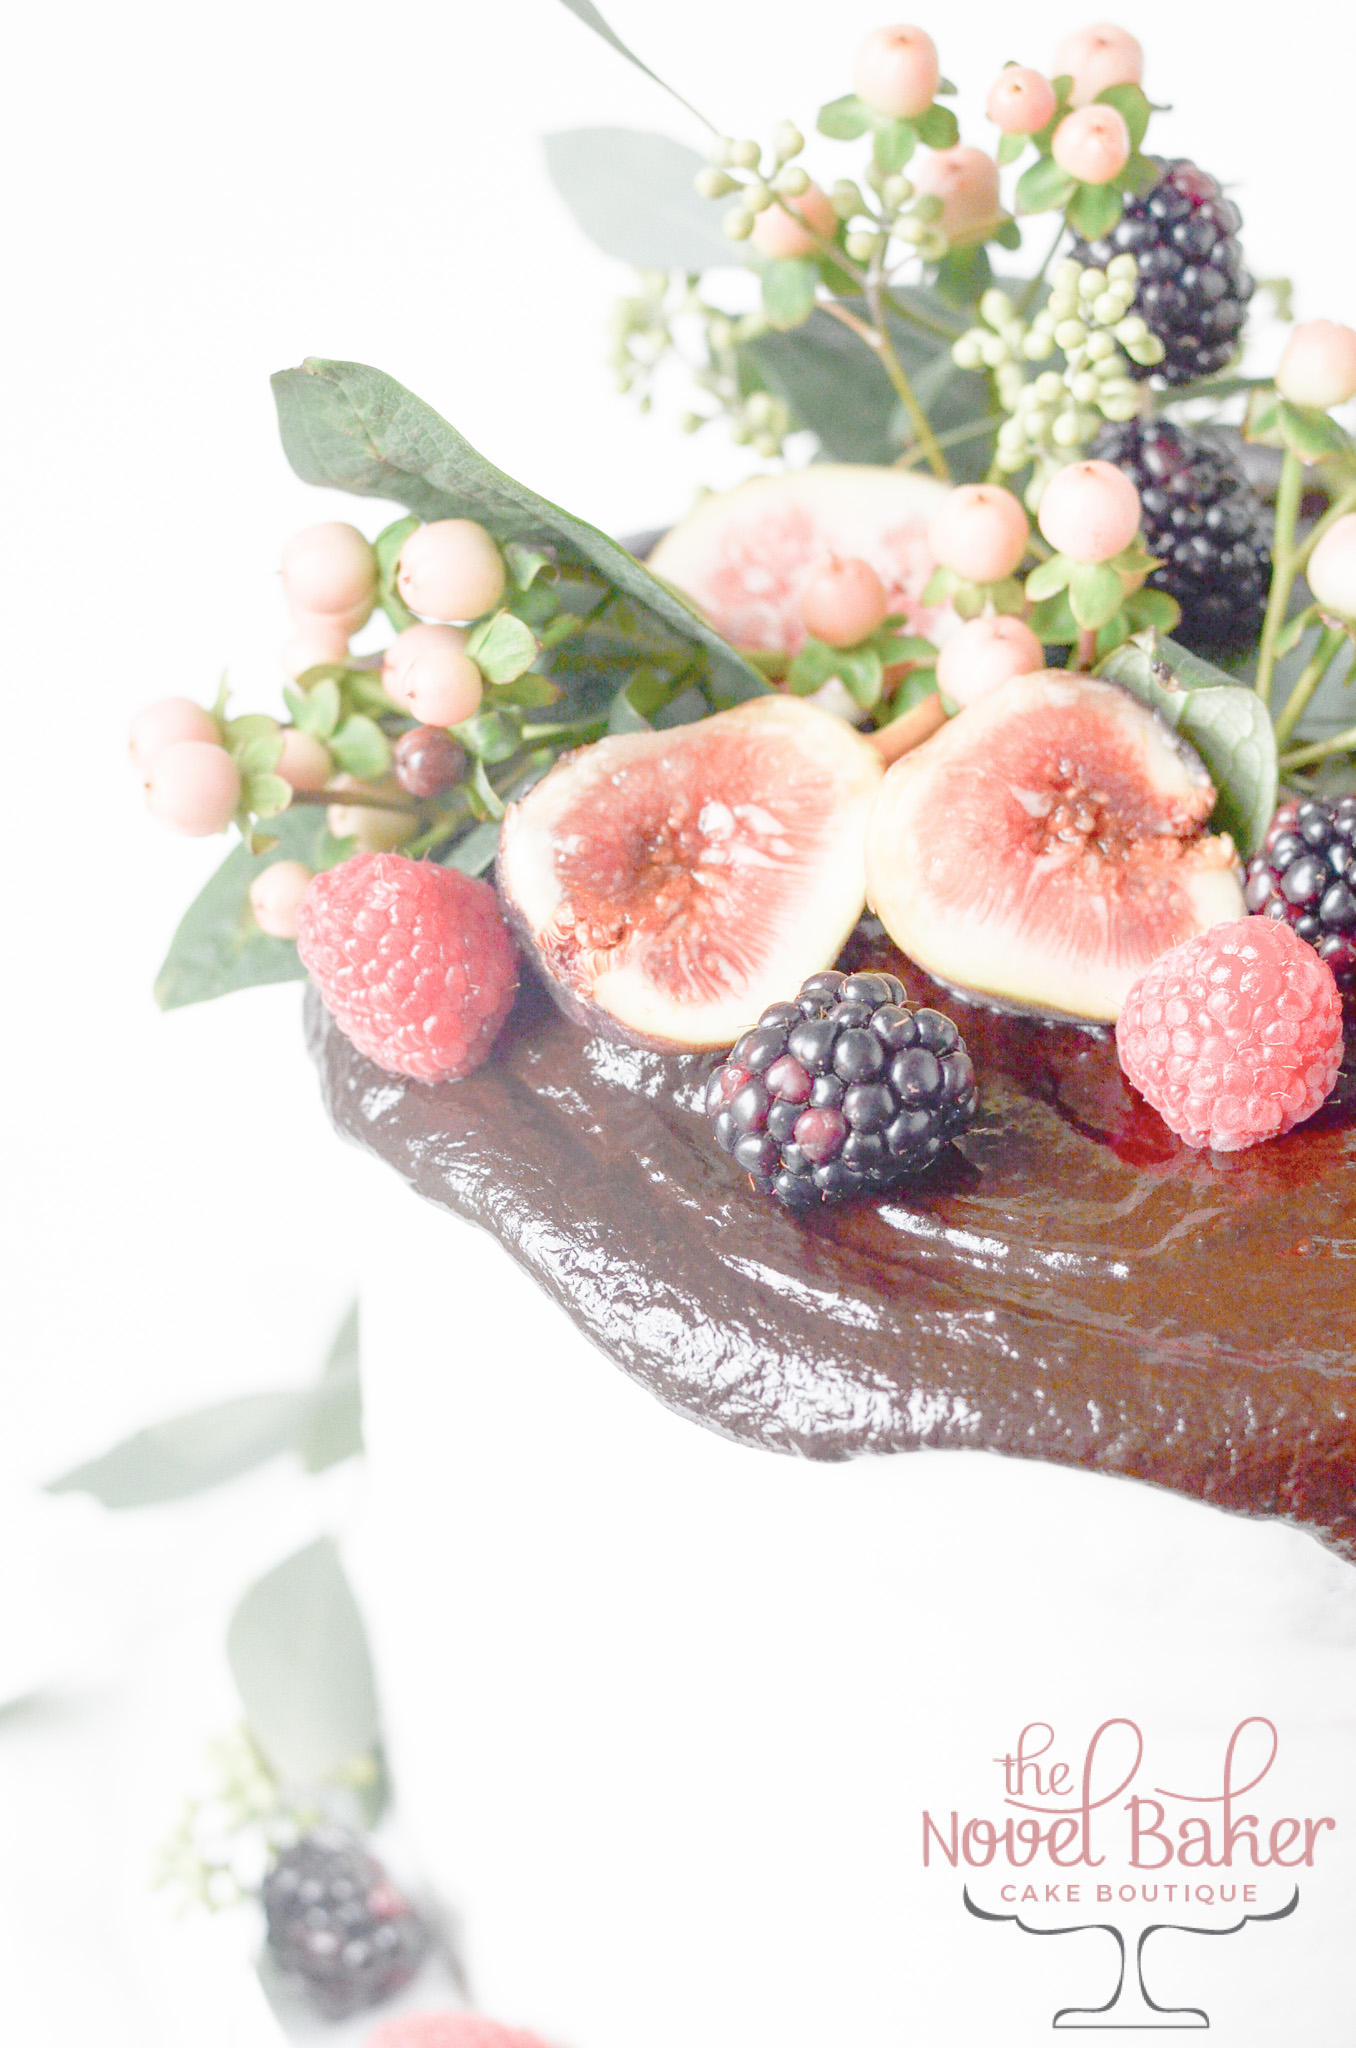 Semi Naked white buttercream over chocolate cake, chocolate ganache lid with fresg berries, figs, and eucalyptus